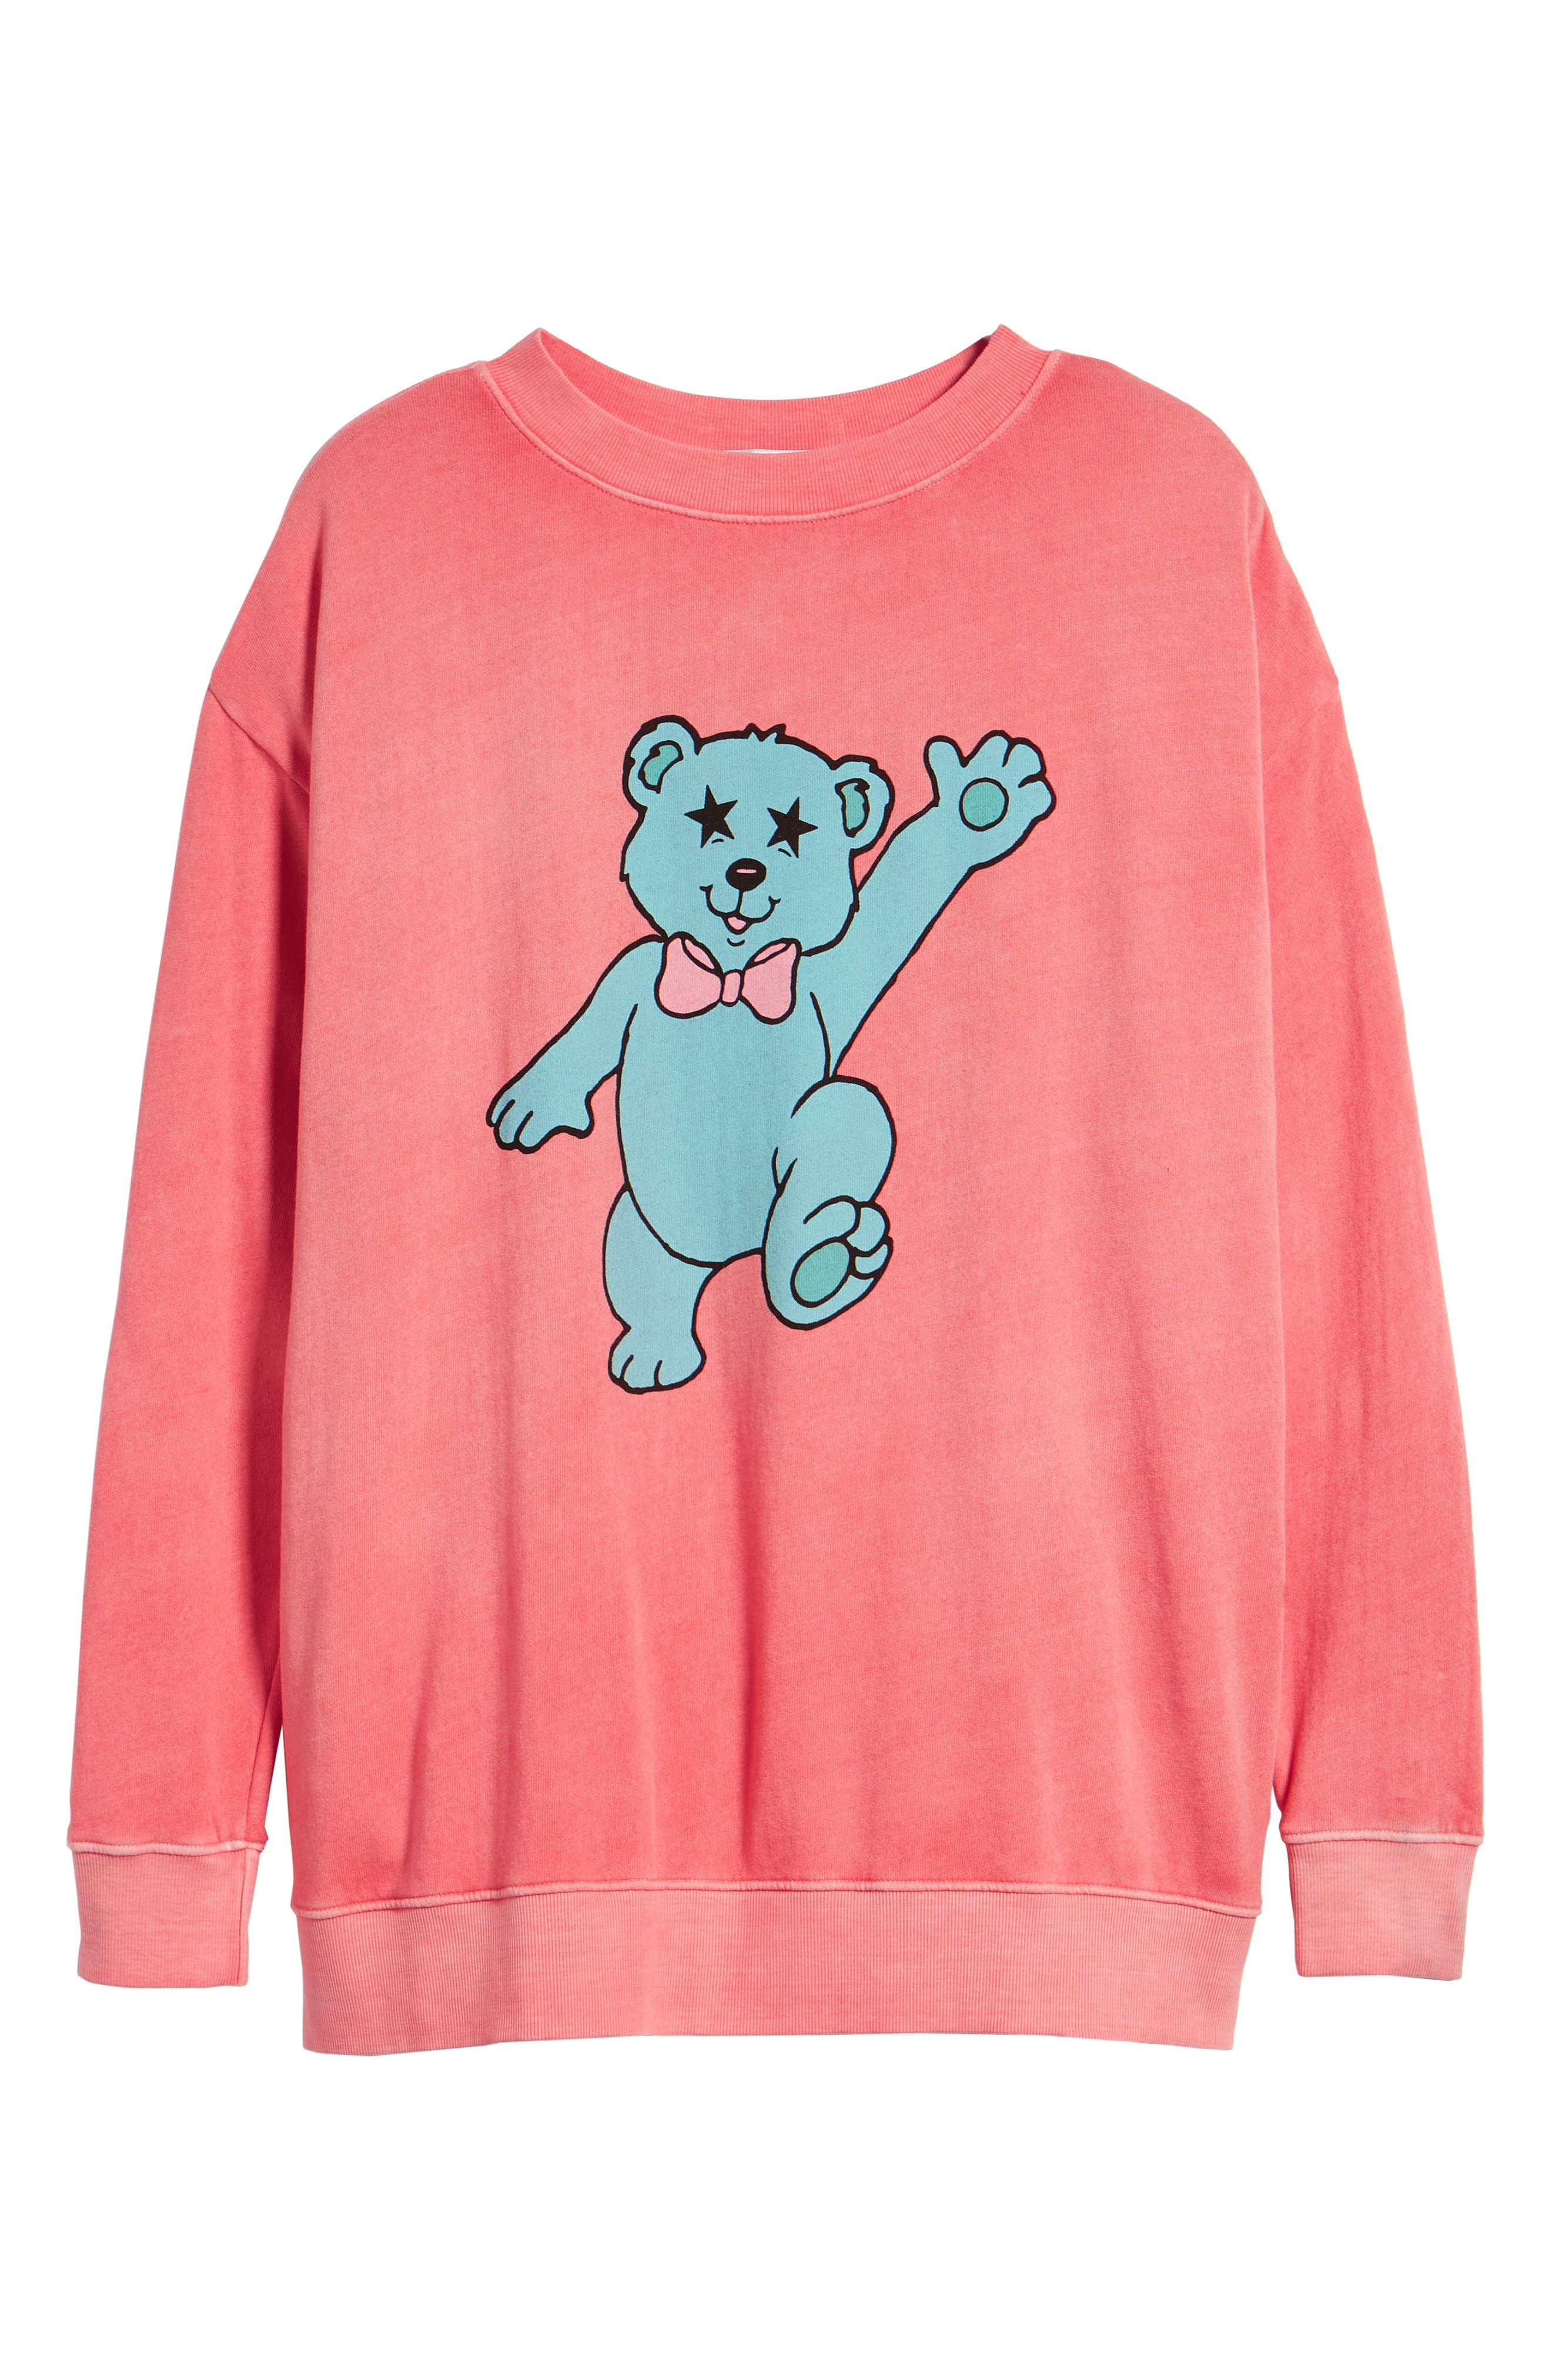 Groovy Teddy Road Trip Pullover Sweatshirt,                             Alternate thumbnail 7, color,                             640